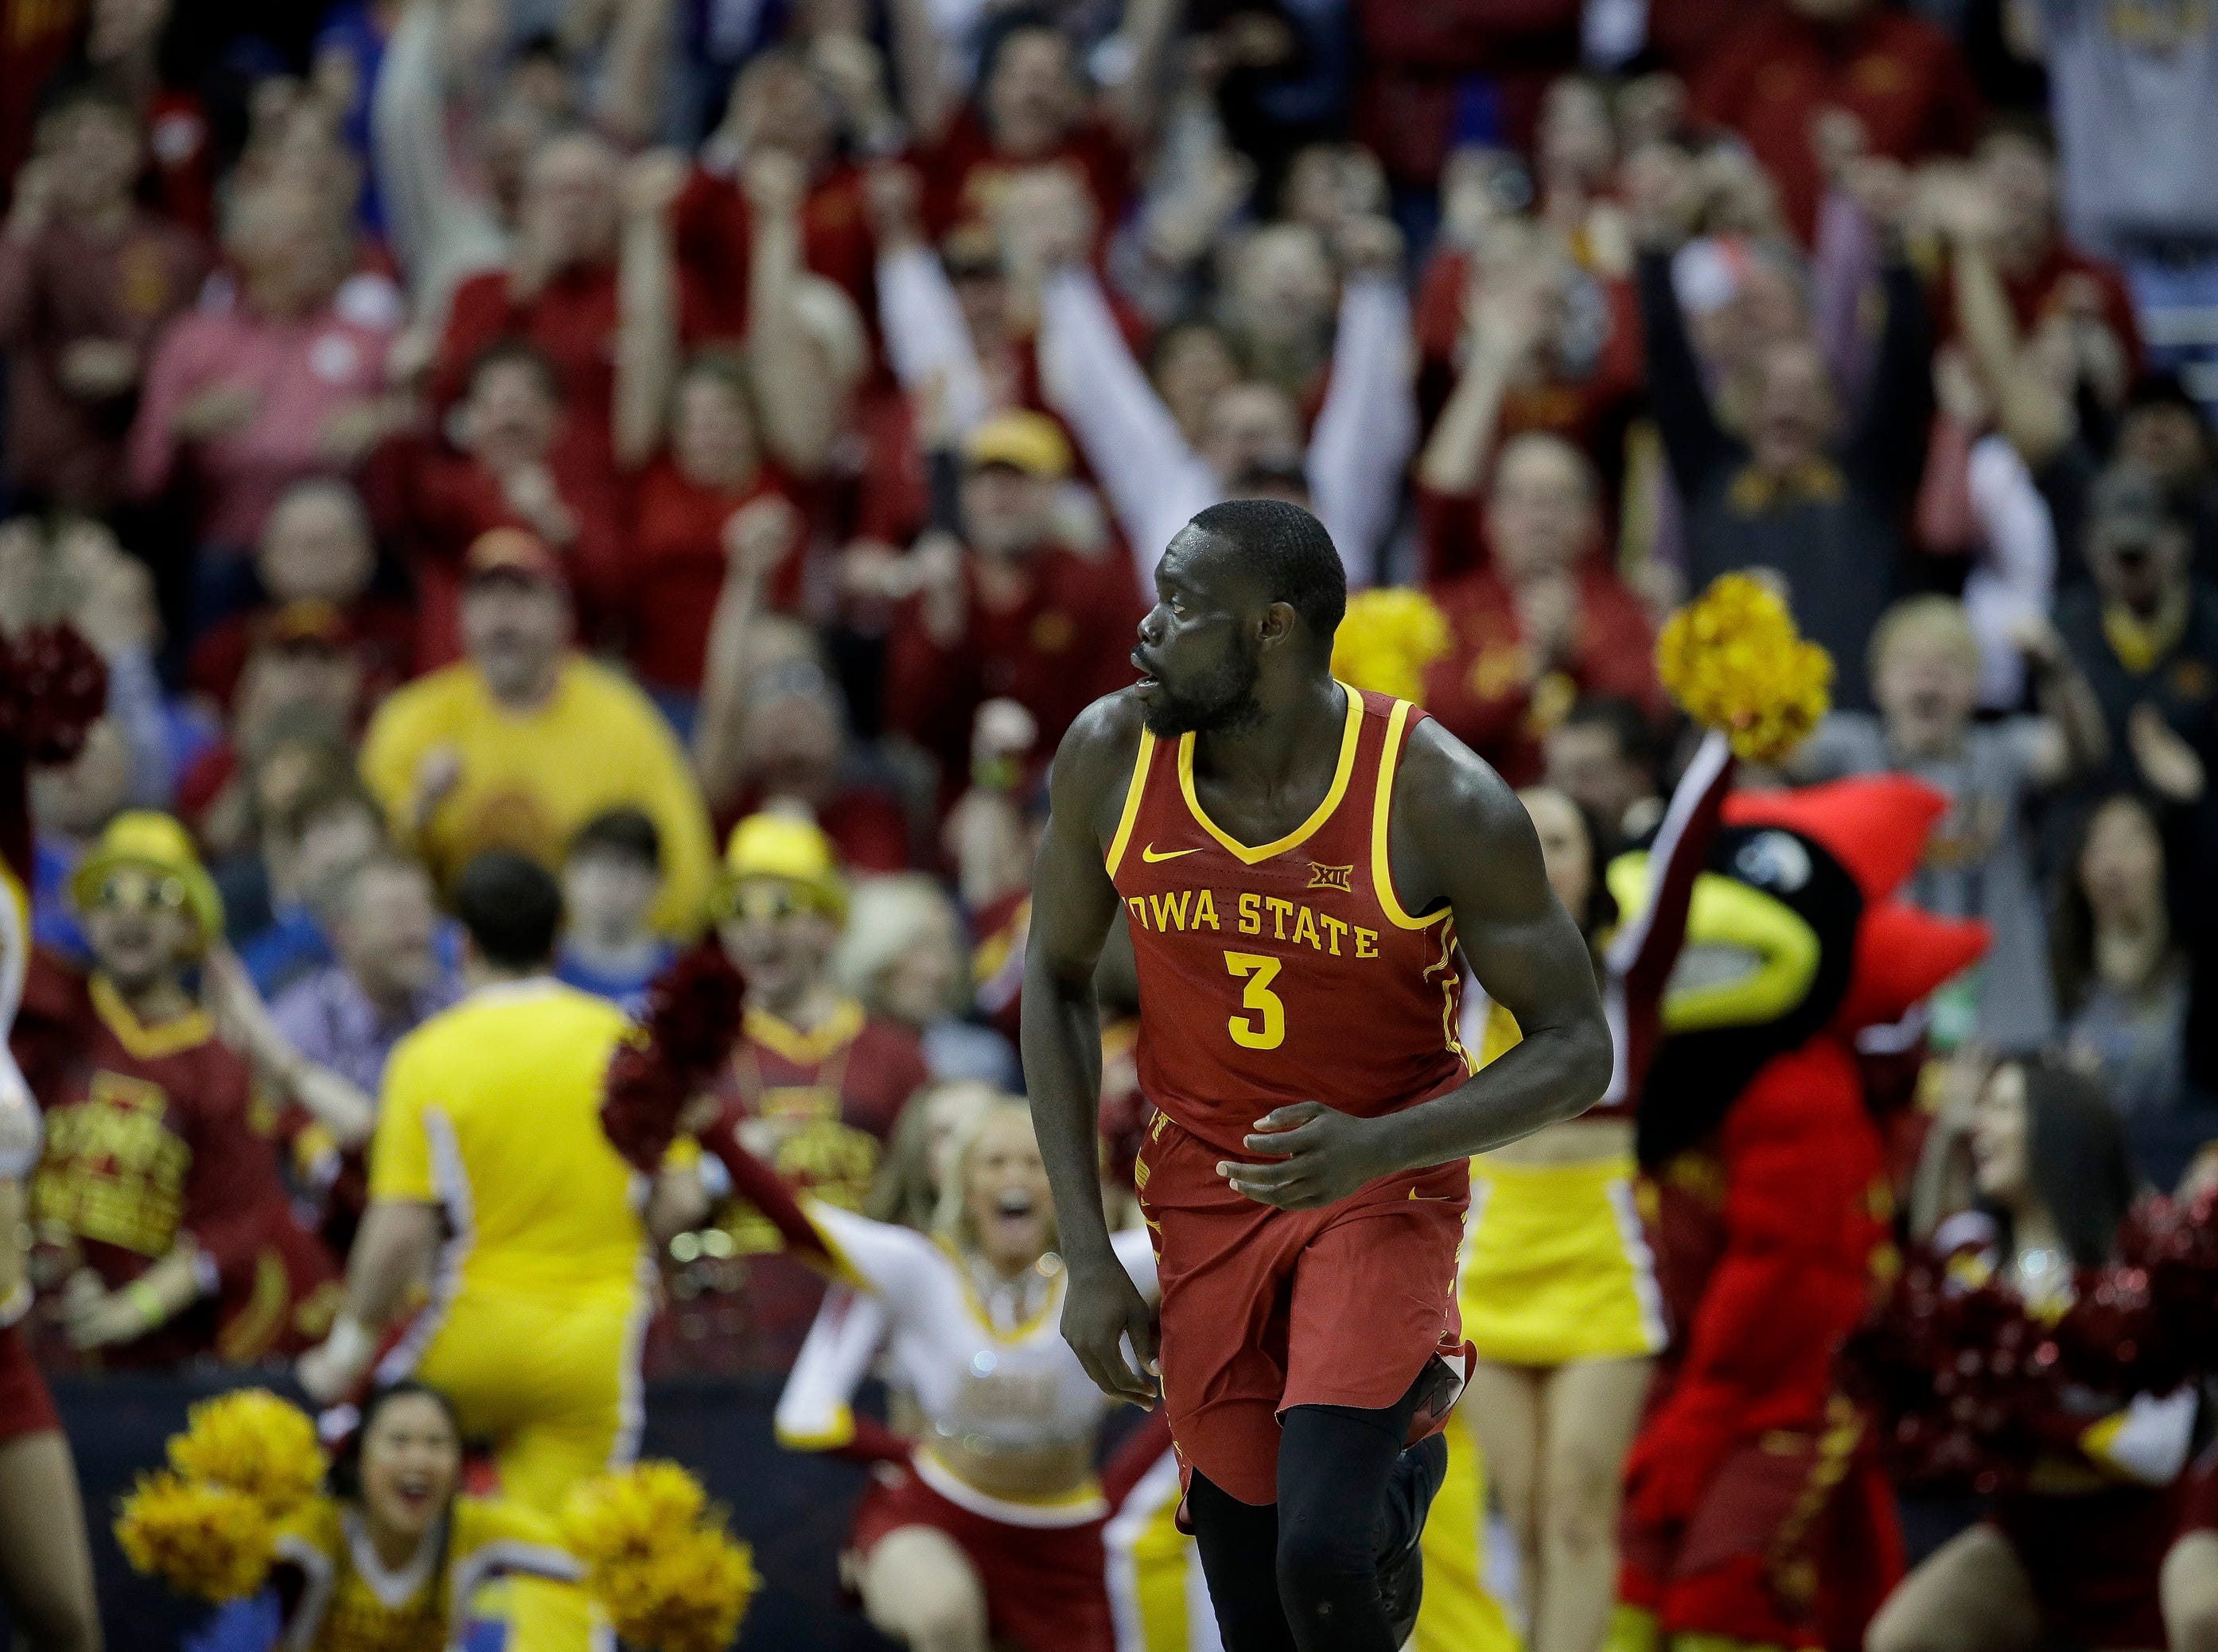 Iowa State's Marial Shayok watches his 3-point shot during the second half of an NCAA college basketball game against Kansas State in the Big 12 men's tournament Friday, March 15, 2019, in Kansas City, Mo. Iowa State won 63-59. (AP Photo/Charlie Riedel)